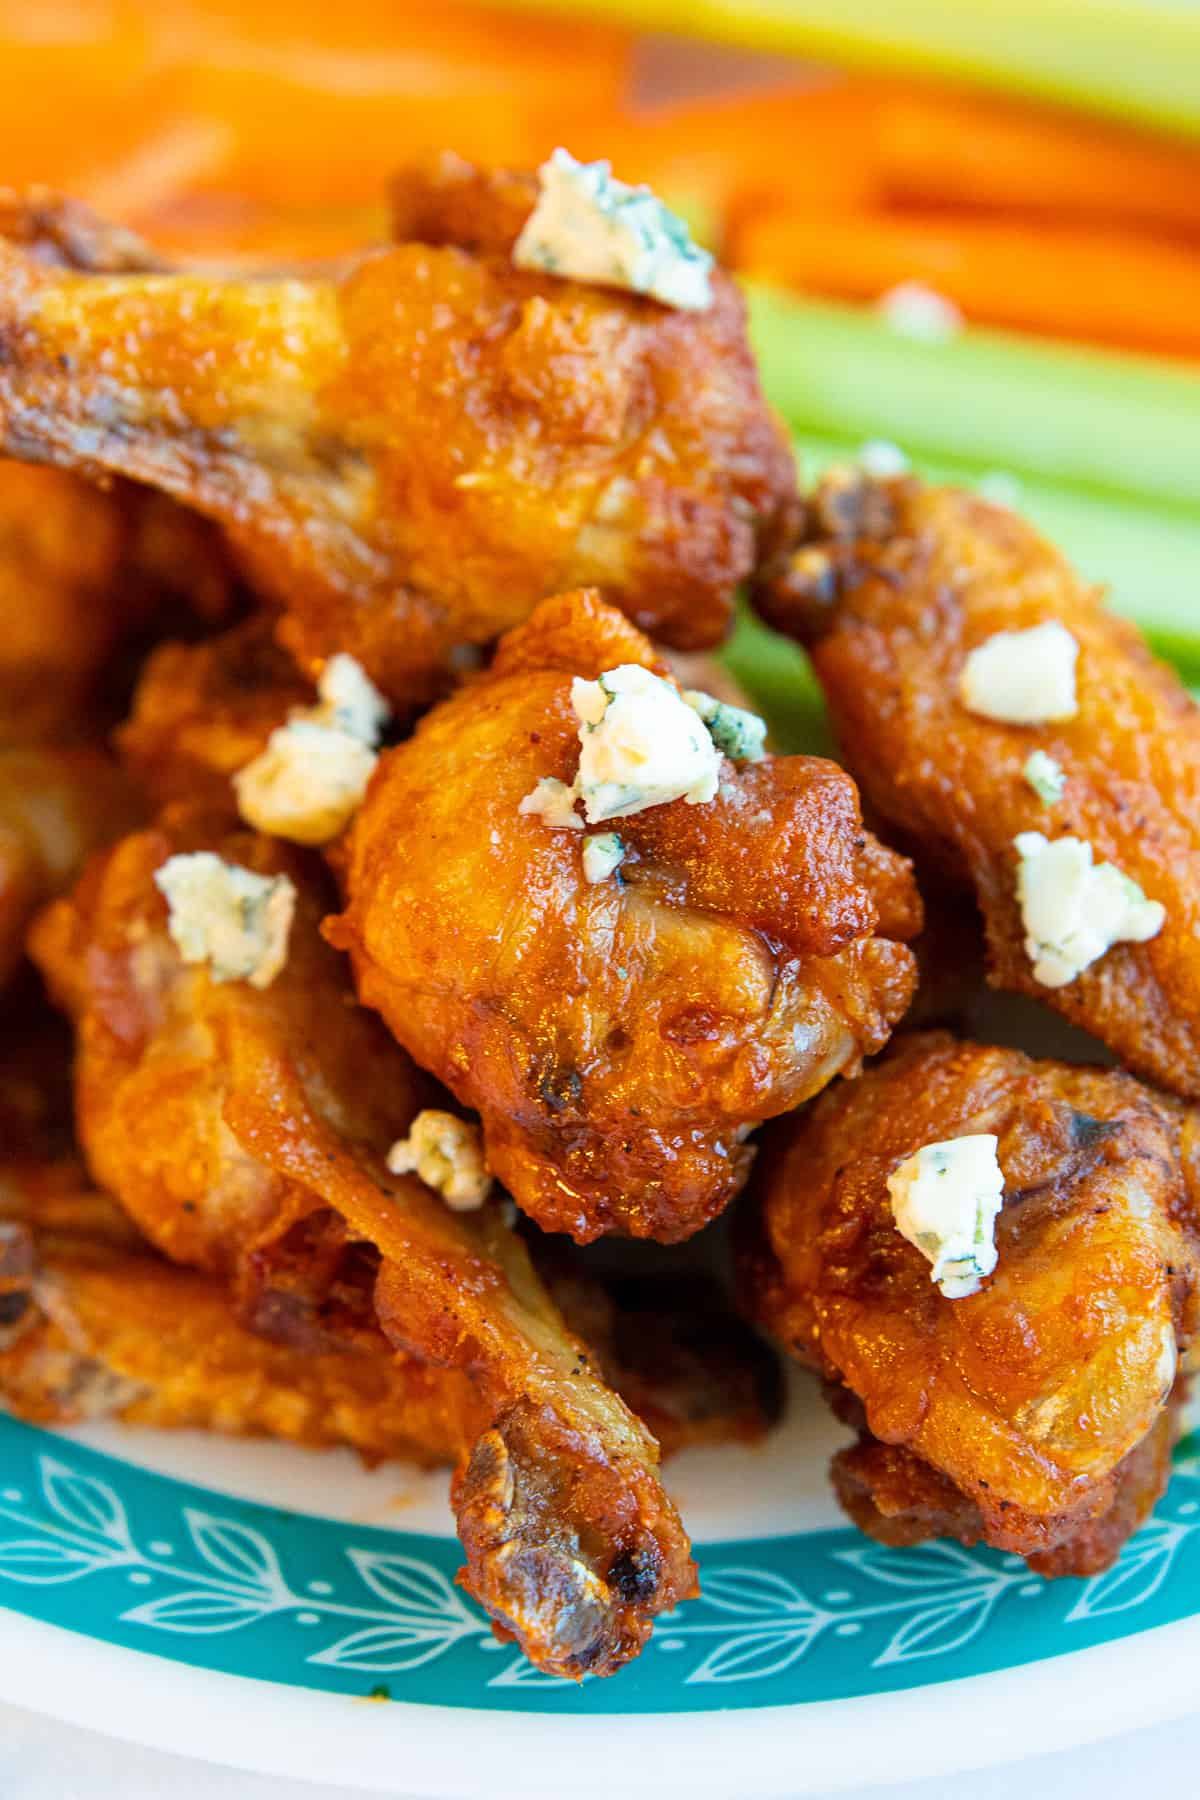 Buffalo wings covered in blue cheese crumbles